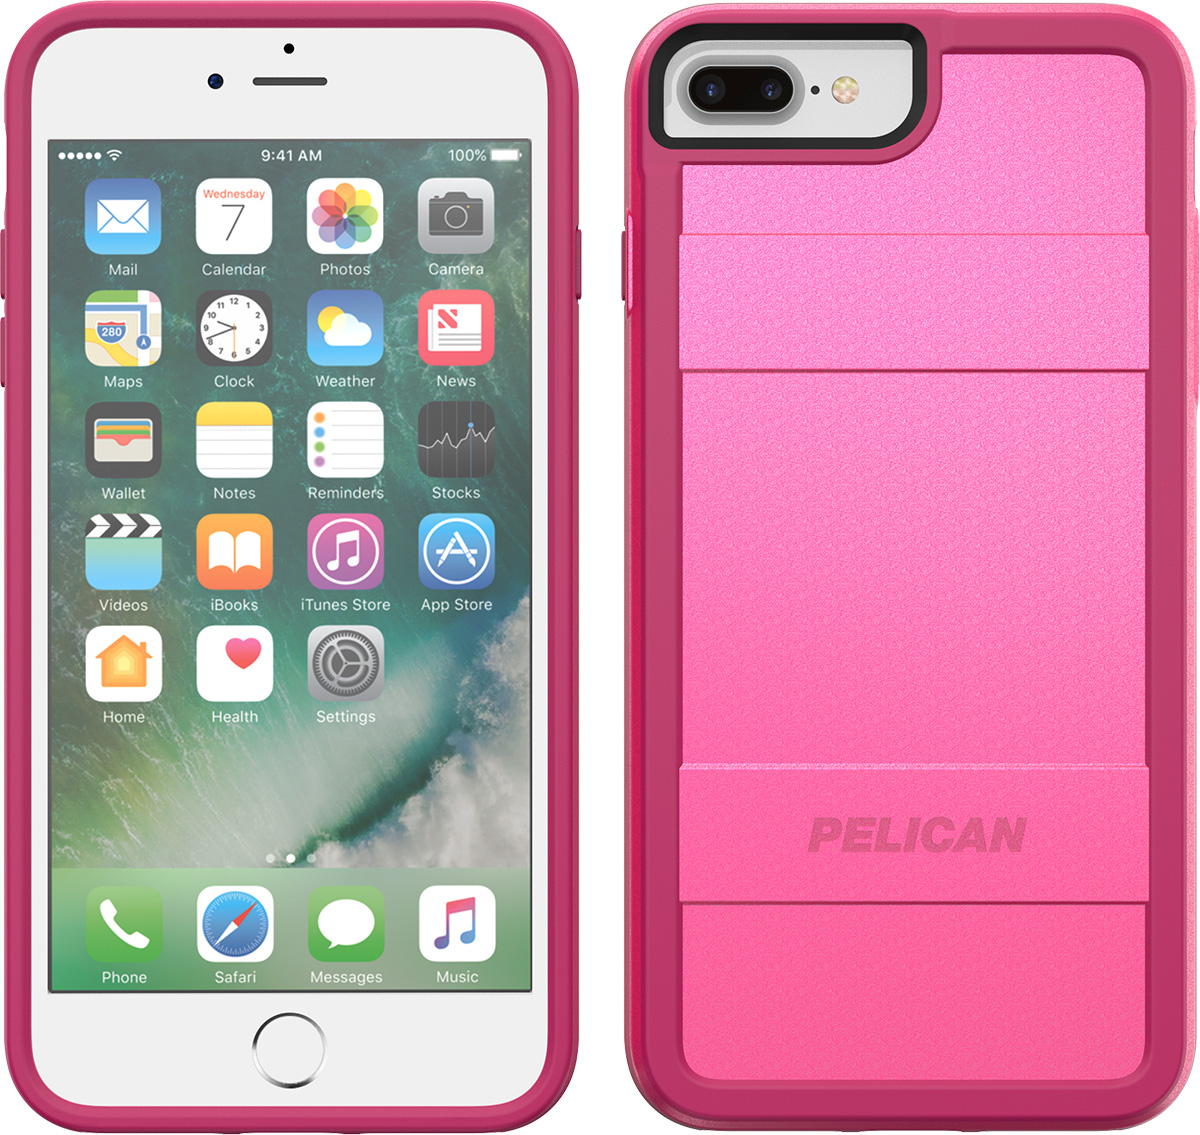 pelican c24000 iphone 7 plus cases pink phone case